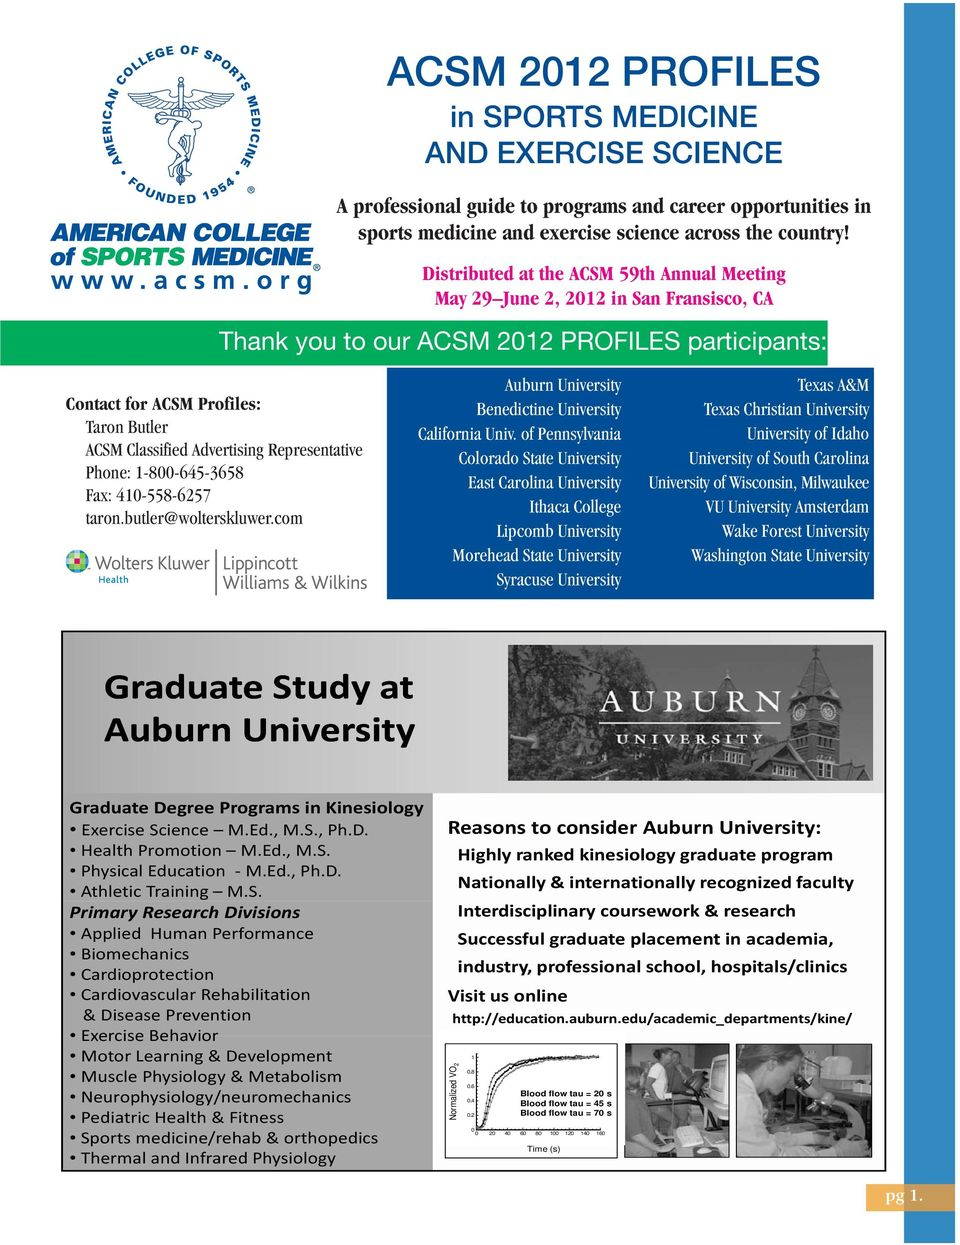 Advertising Representative Phone: 1-800-645-3658 Fax: 410-558-6257 taron.butler@wolterskluwer.com Auburn University Benedictine University California Univ.